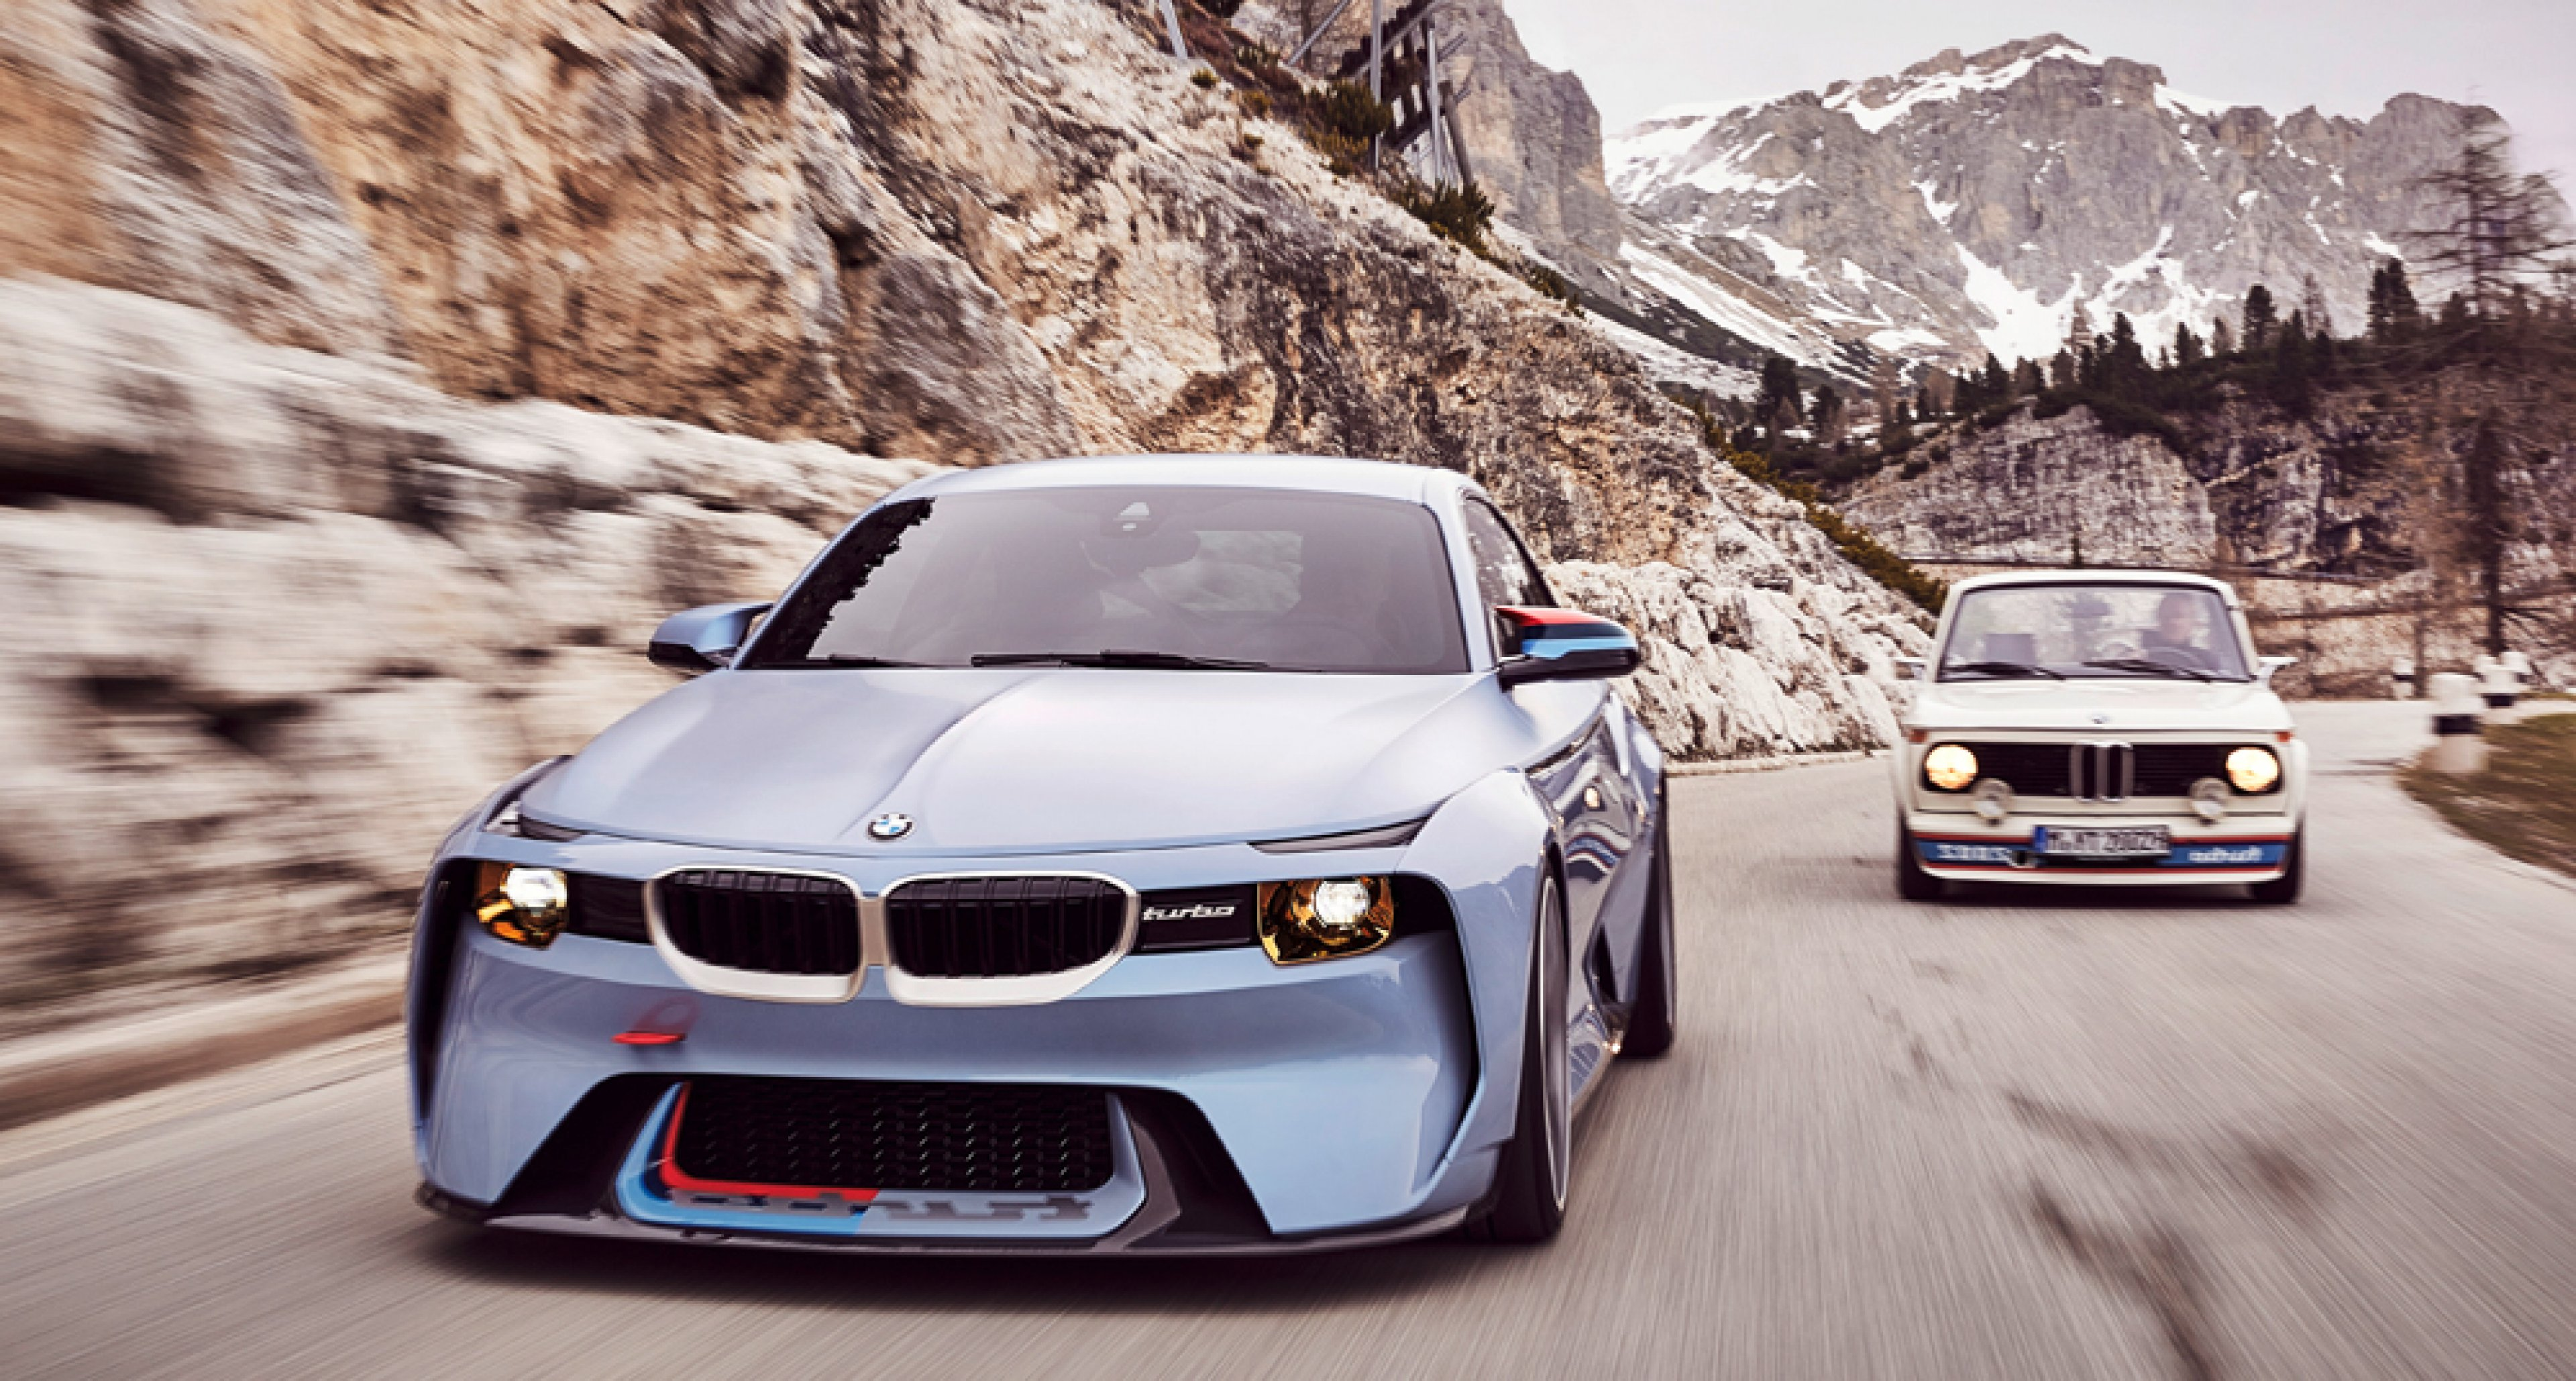 BMWs Hommage Brings Back The Turboboosted Curve Hunter - Bmw 2002 series